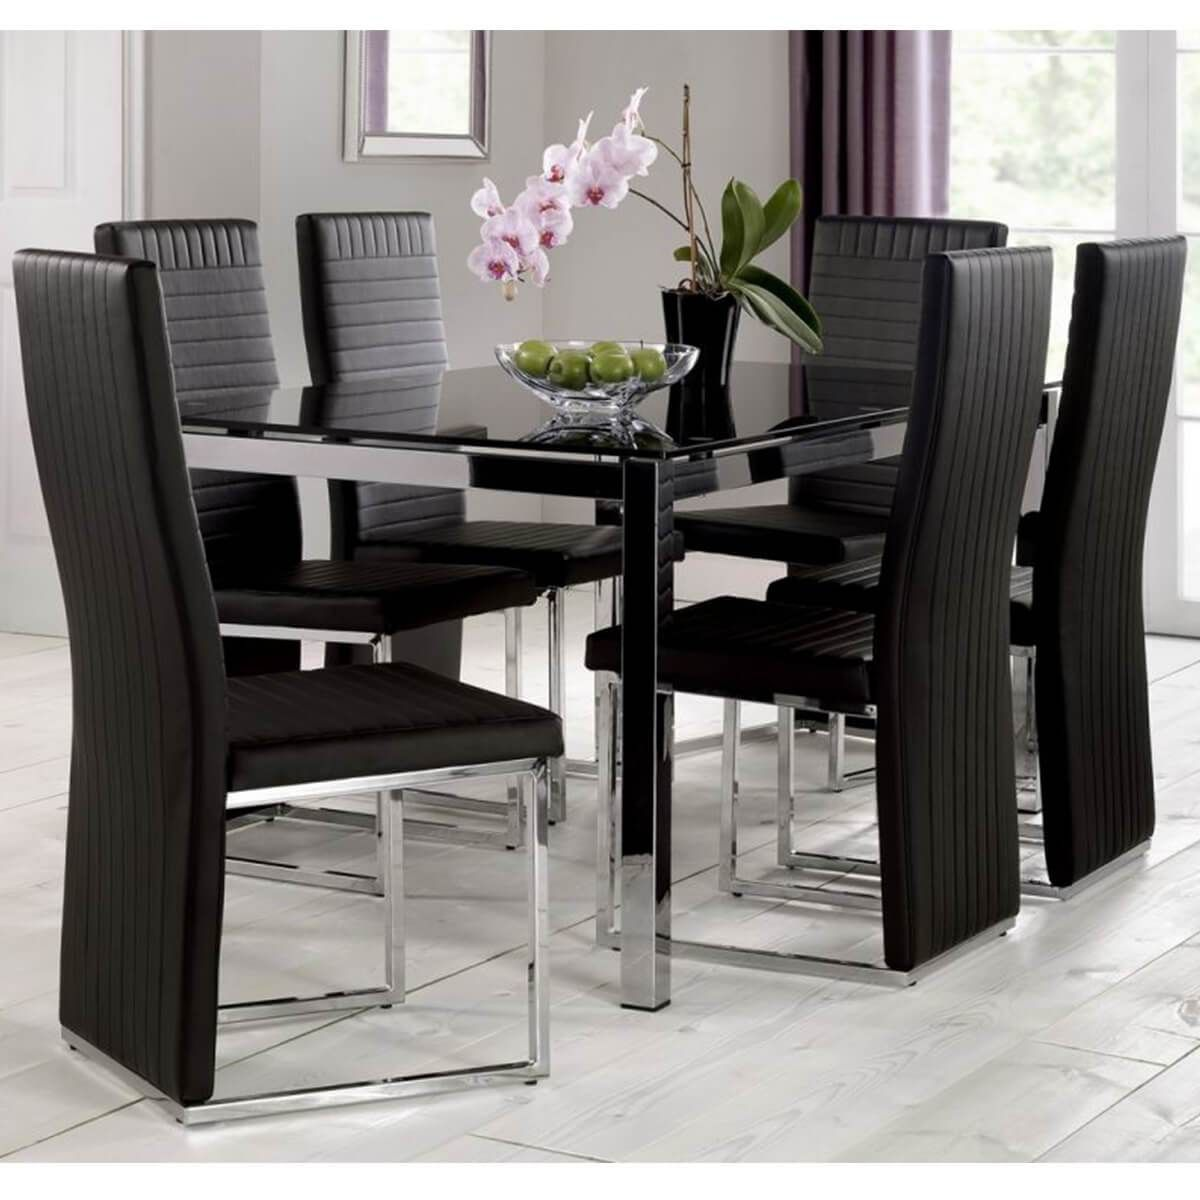 Create A Modern And Stylish Look In Your Dining Room With Our Tempo Black Glass Dining Set A R Black Glass Dining Table Dining Table Chairs Glass Dining Table